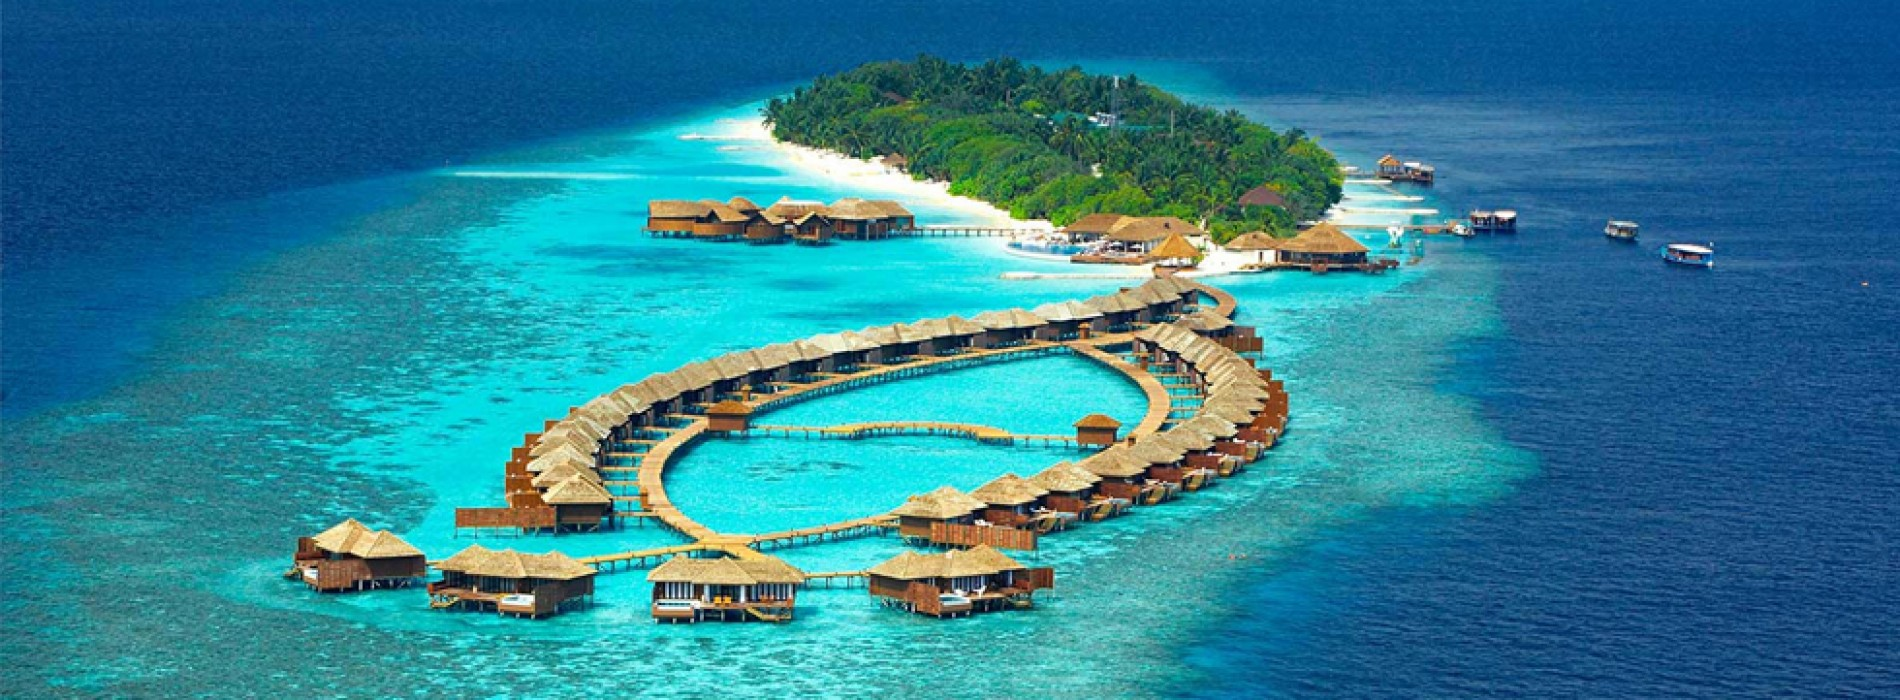 Maldives nominated for Indian Ocean Best Spa Destination-2017 at 3rd Annual World Spa awards